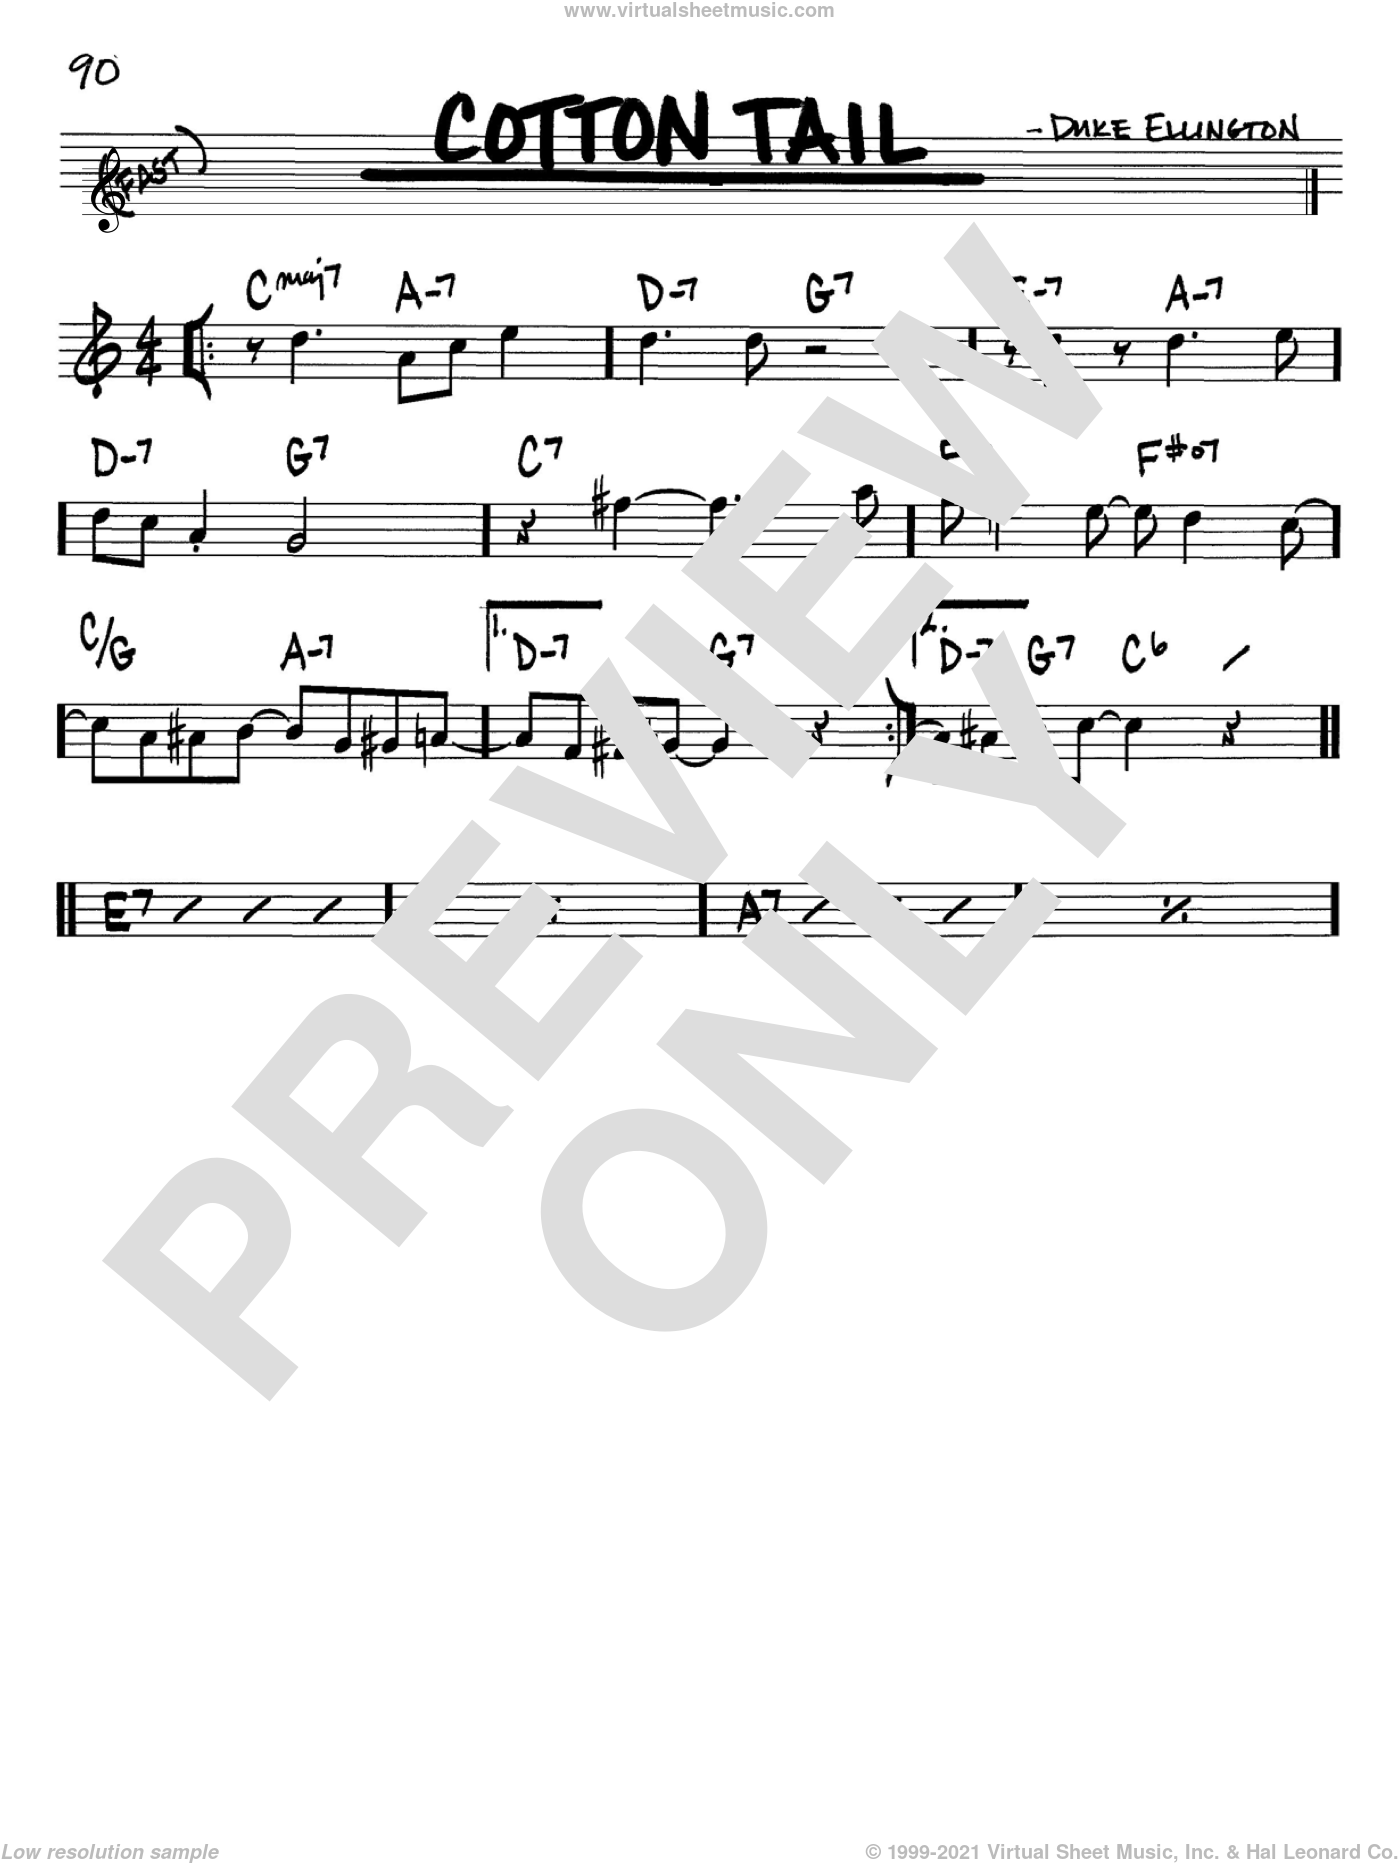 Cotton Tail sheet music for voice and other instruments (in Bb) by Duke Ellington, intermediate skill level